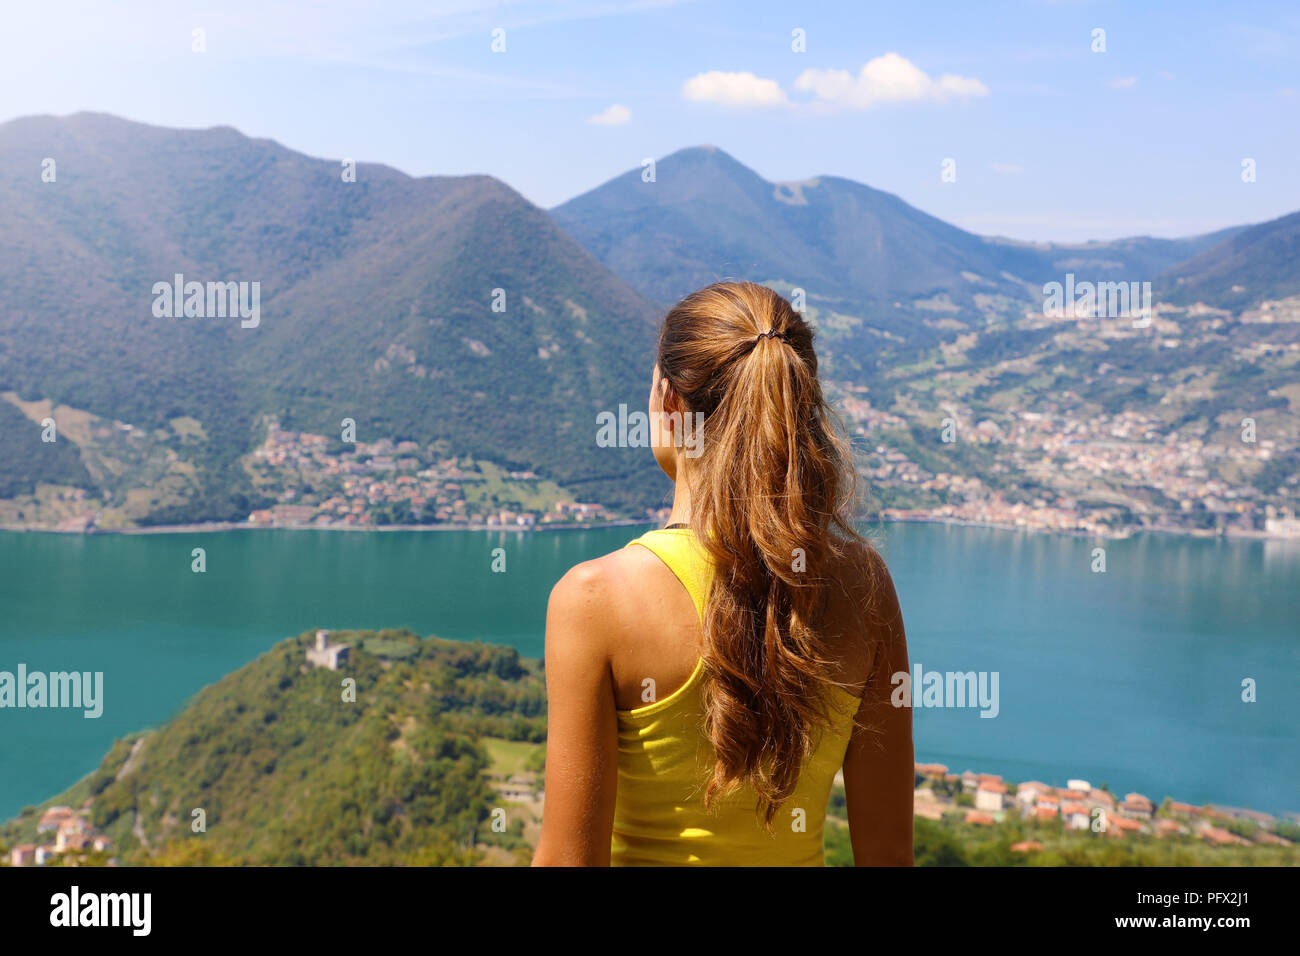 Young woman hiker standing admiring a mountaintop view looking out over distant ranges of mountains and valleys in a healthy active lifestyle concept - Stock Image